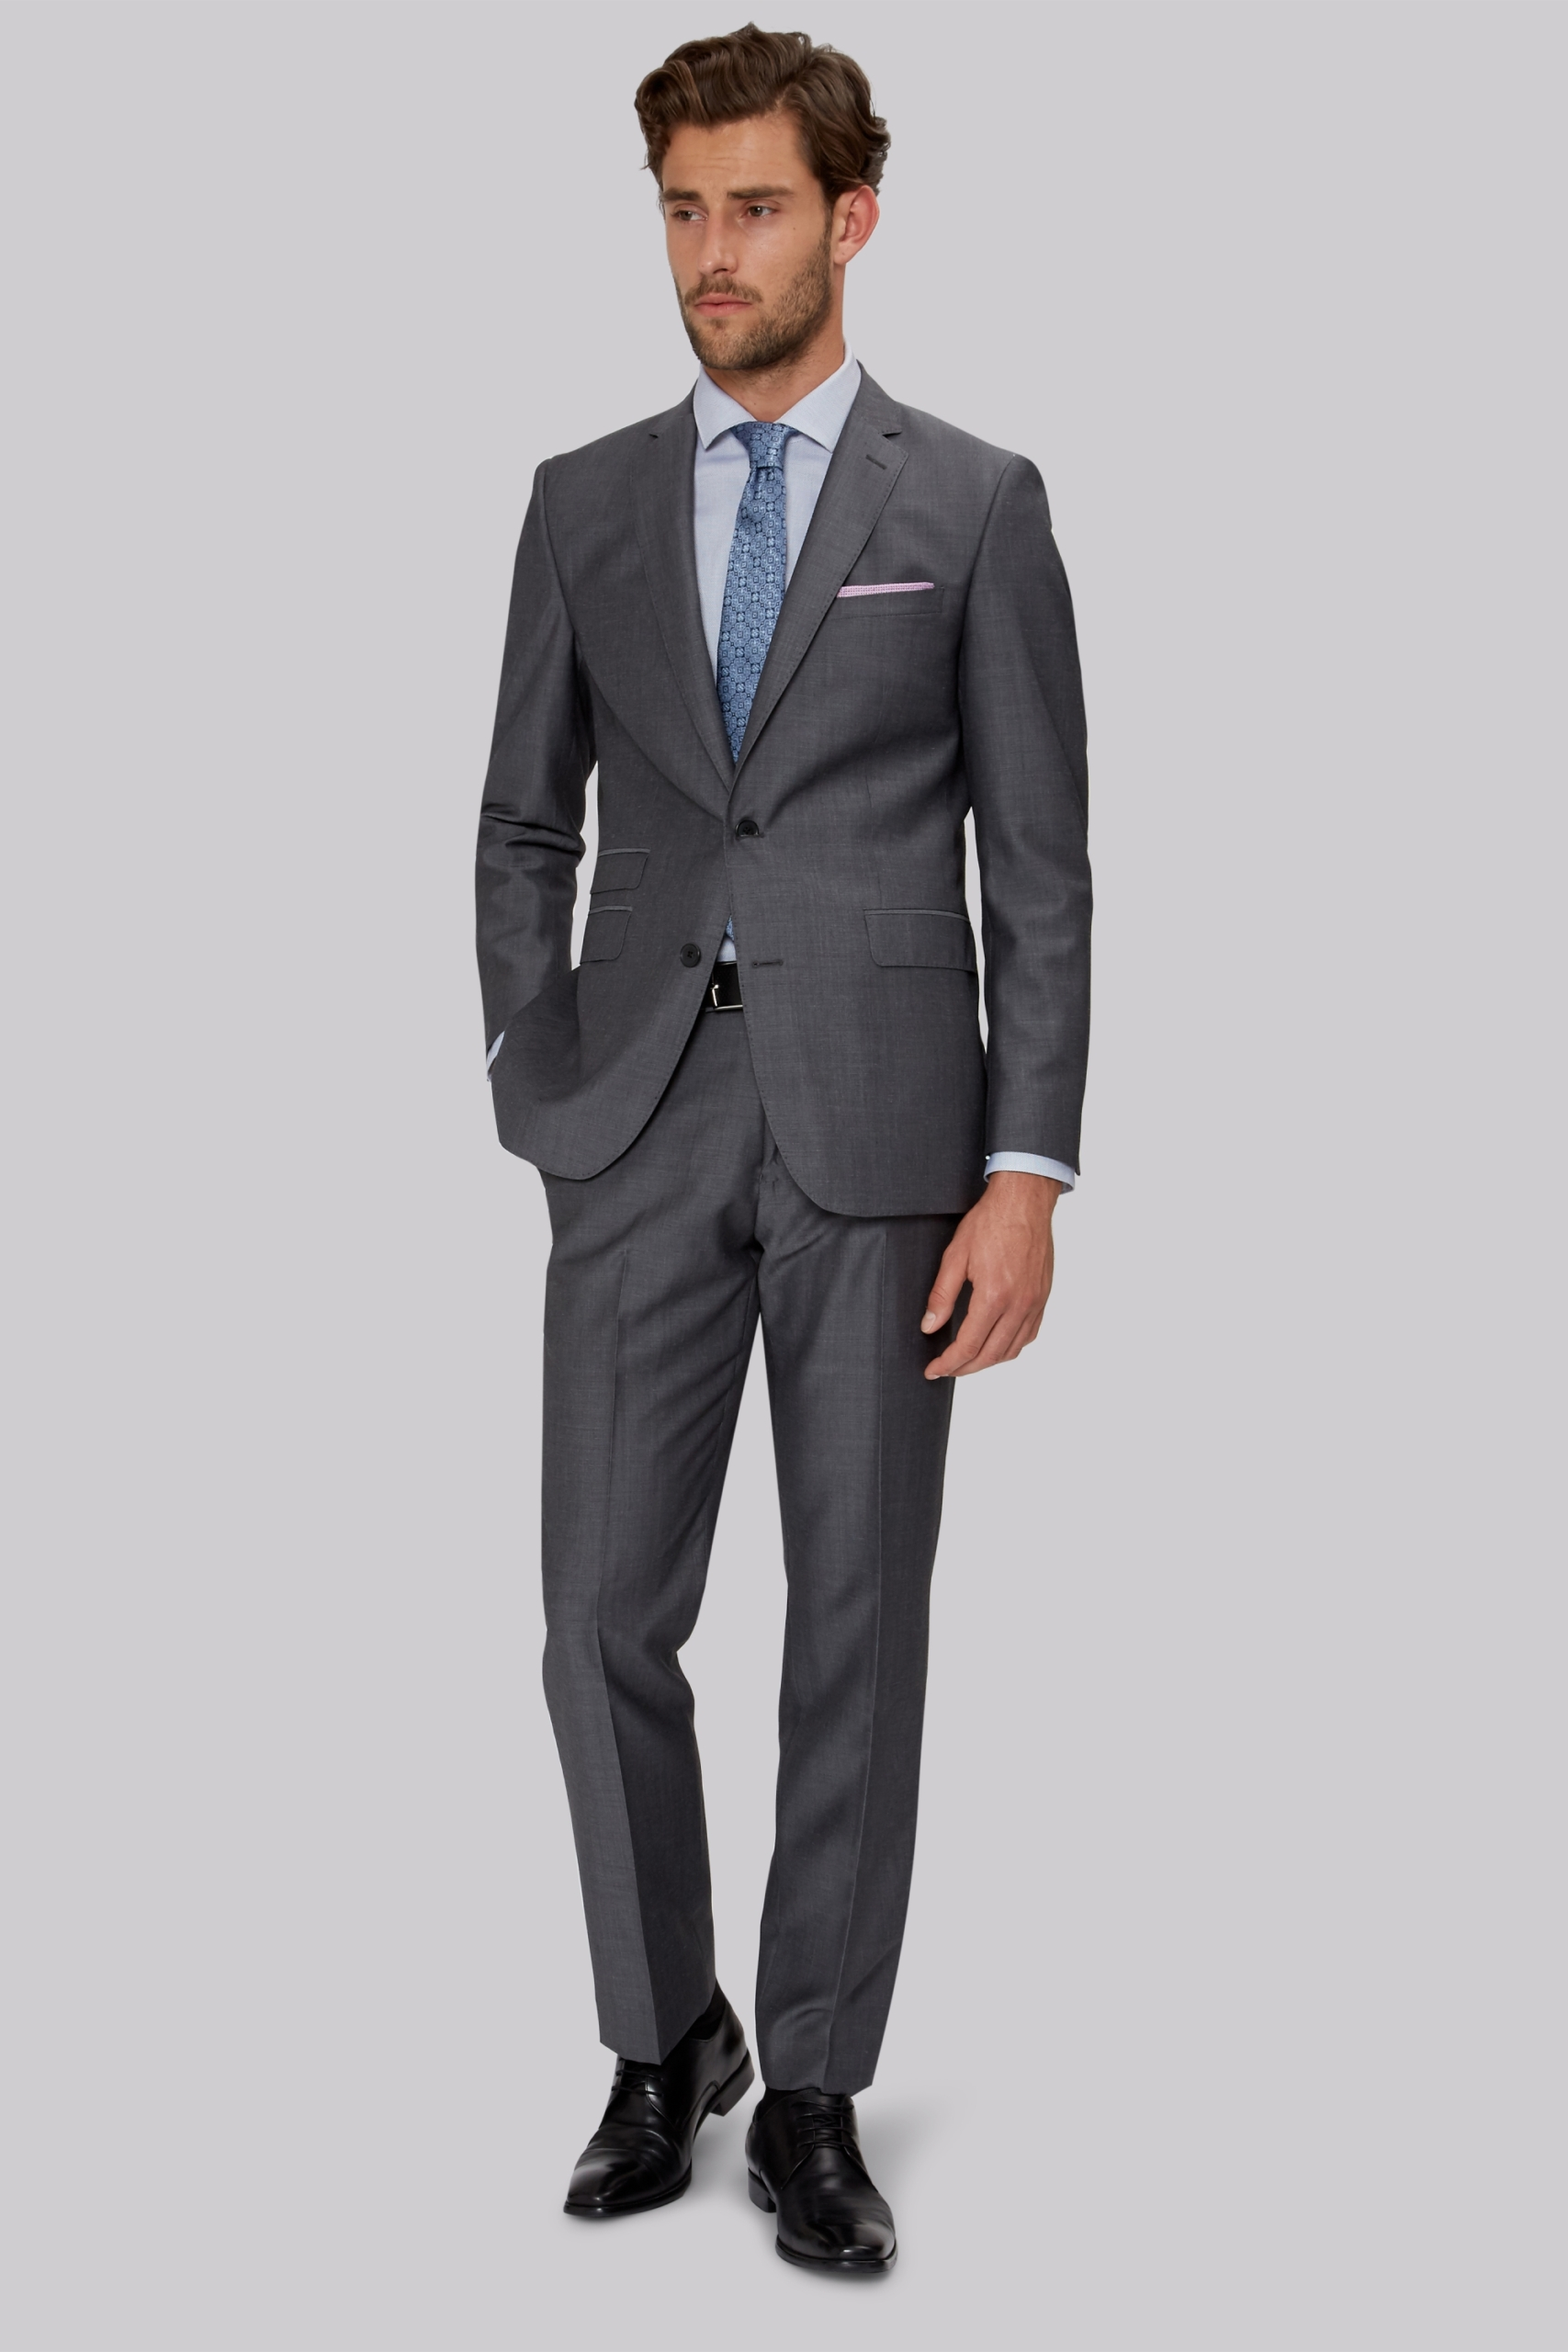 The Beautiful Mohair suit Styles For Men